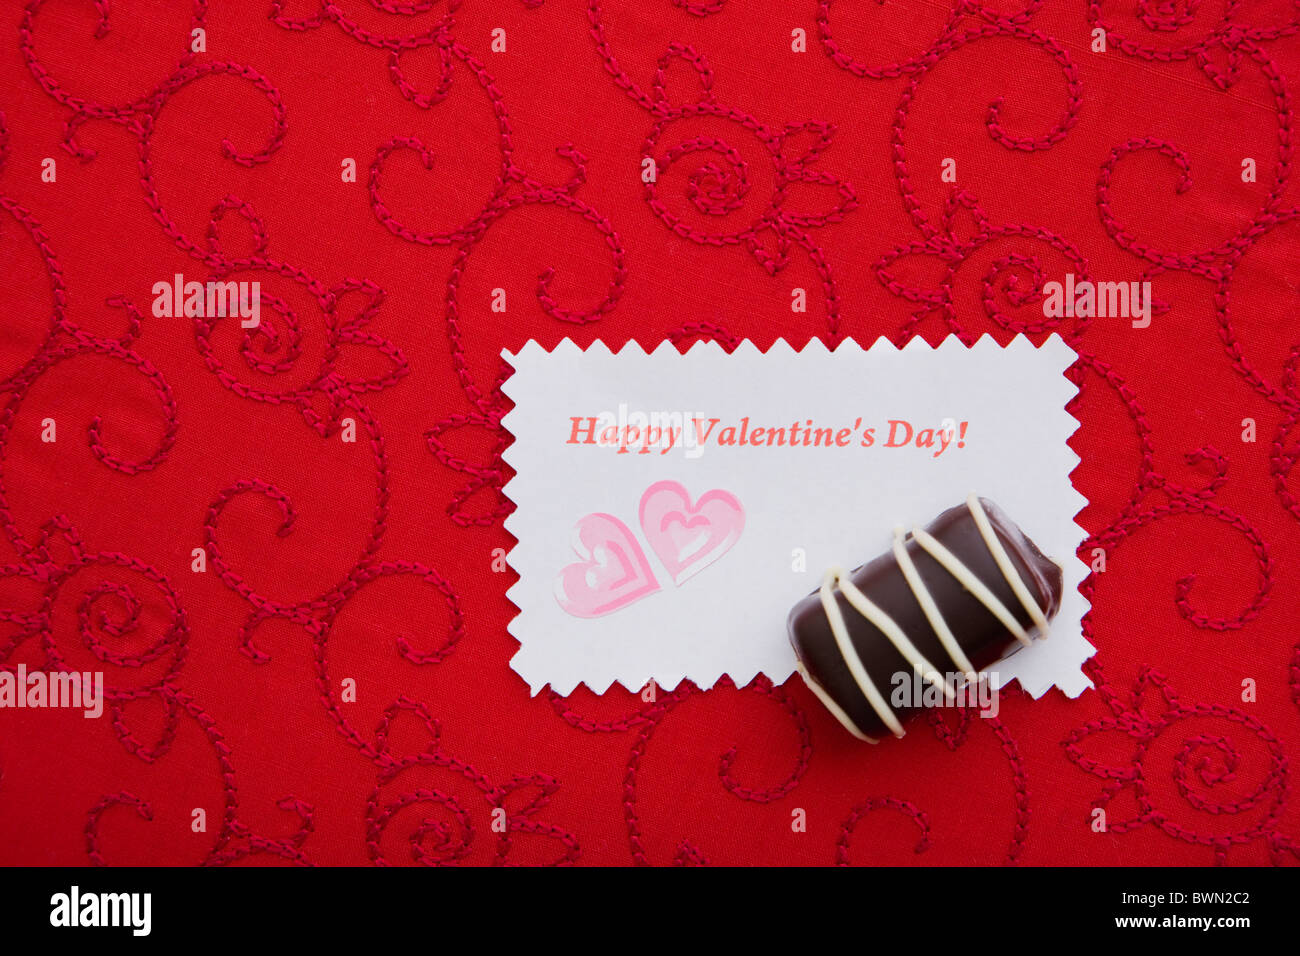 Valentines Day Greeting Card Stock Photos Valentines Day Greeting